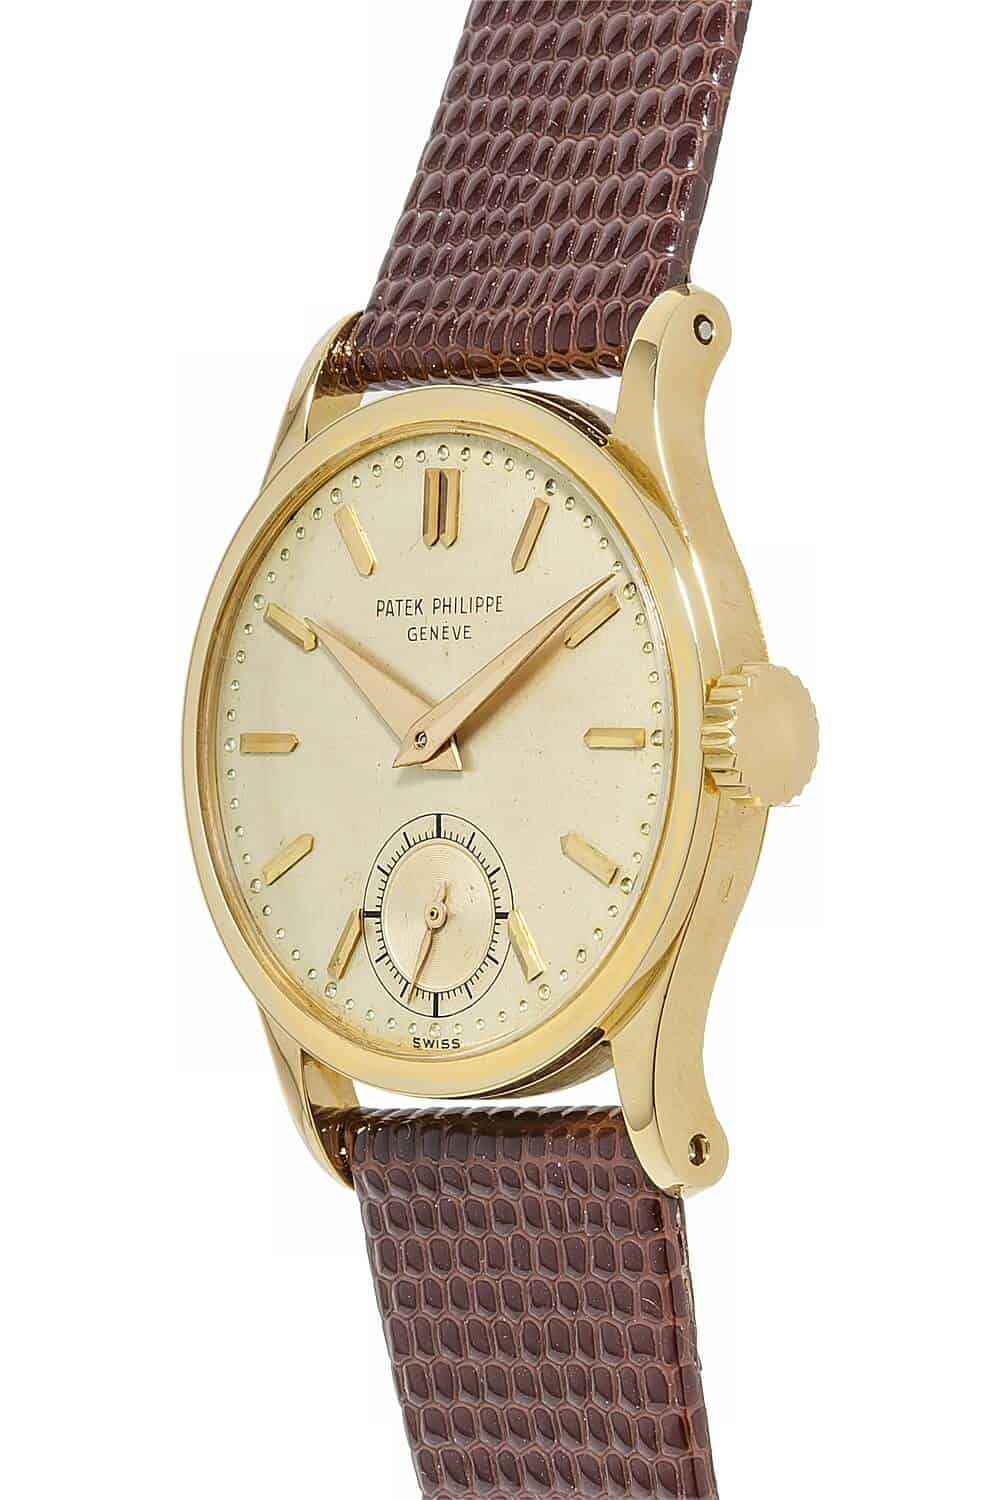 Patek philippe calatrava watch primer gentleman 39 s gazette for Patek philippe